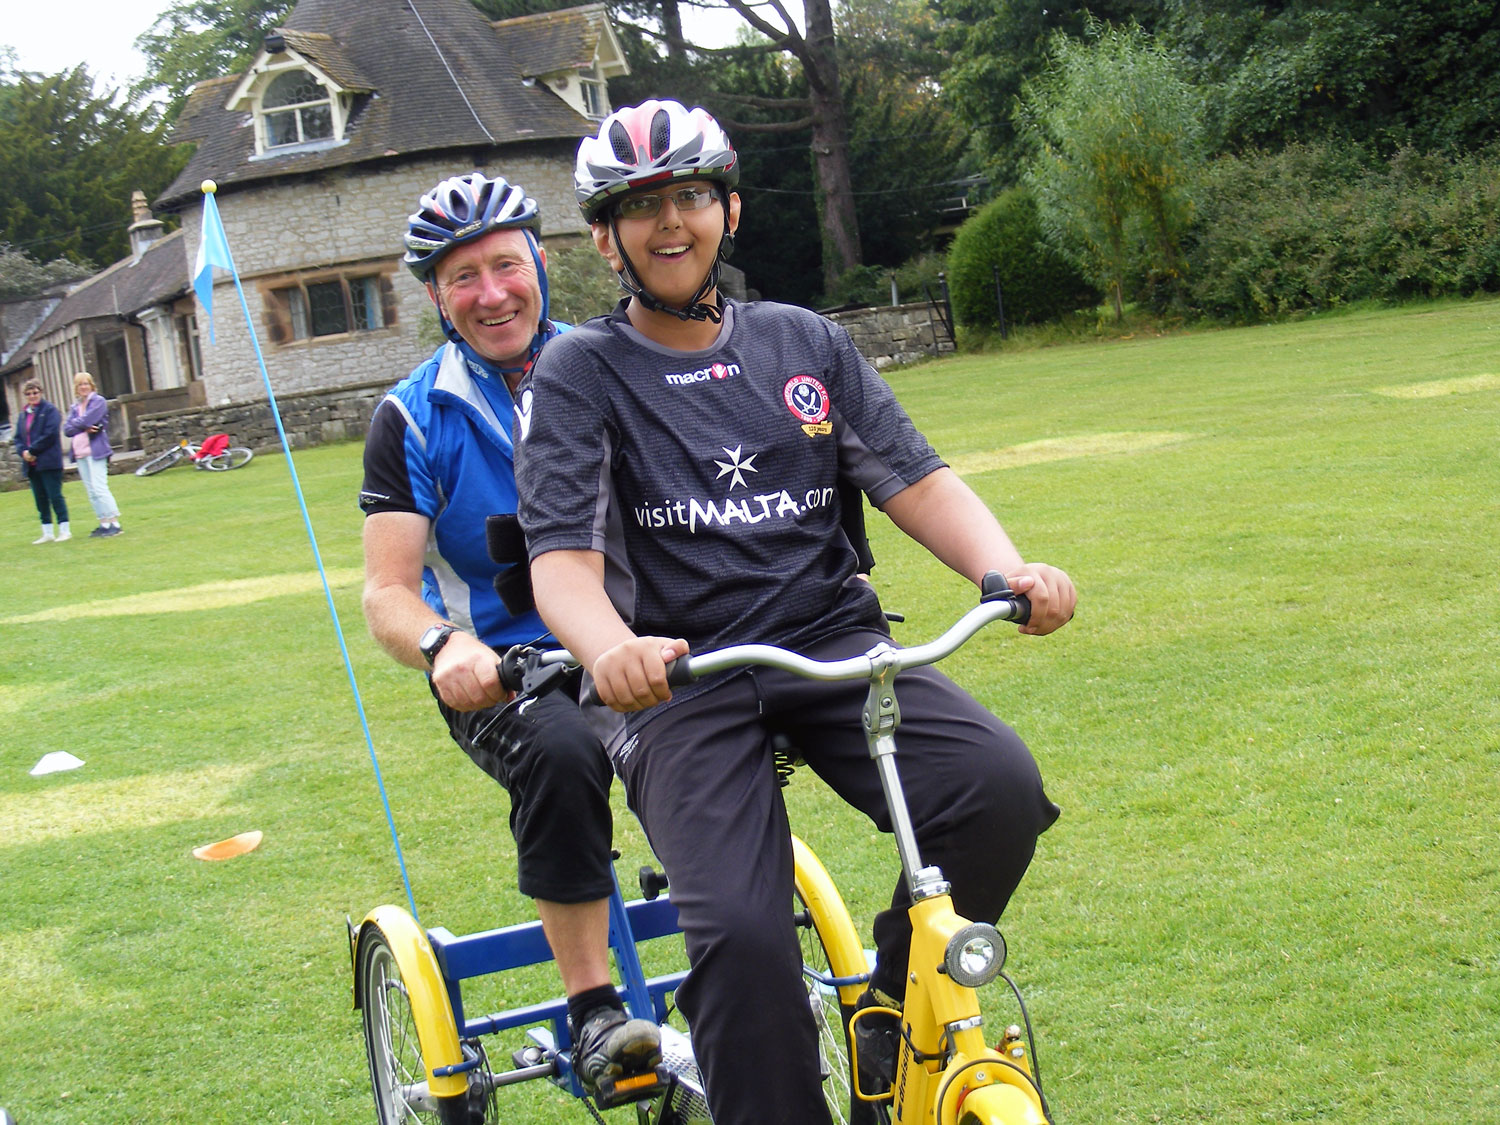 Adult and child on a accessibility trike